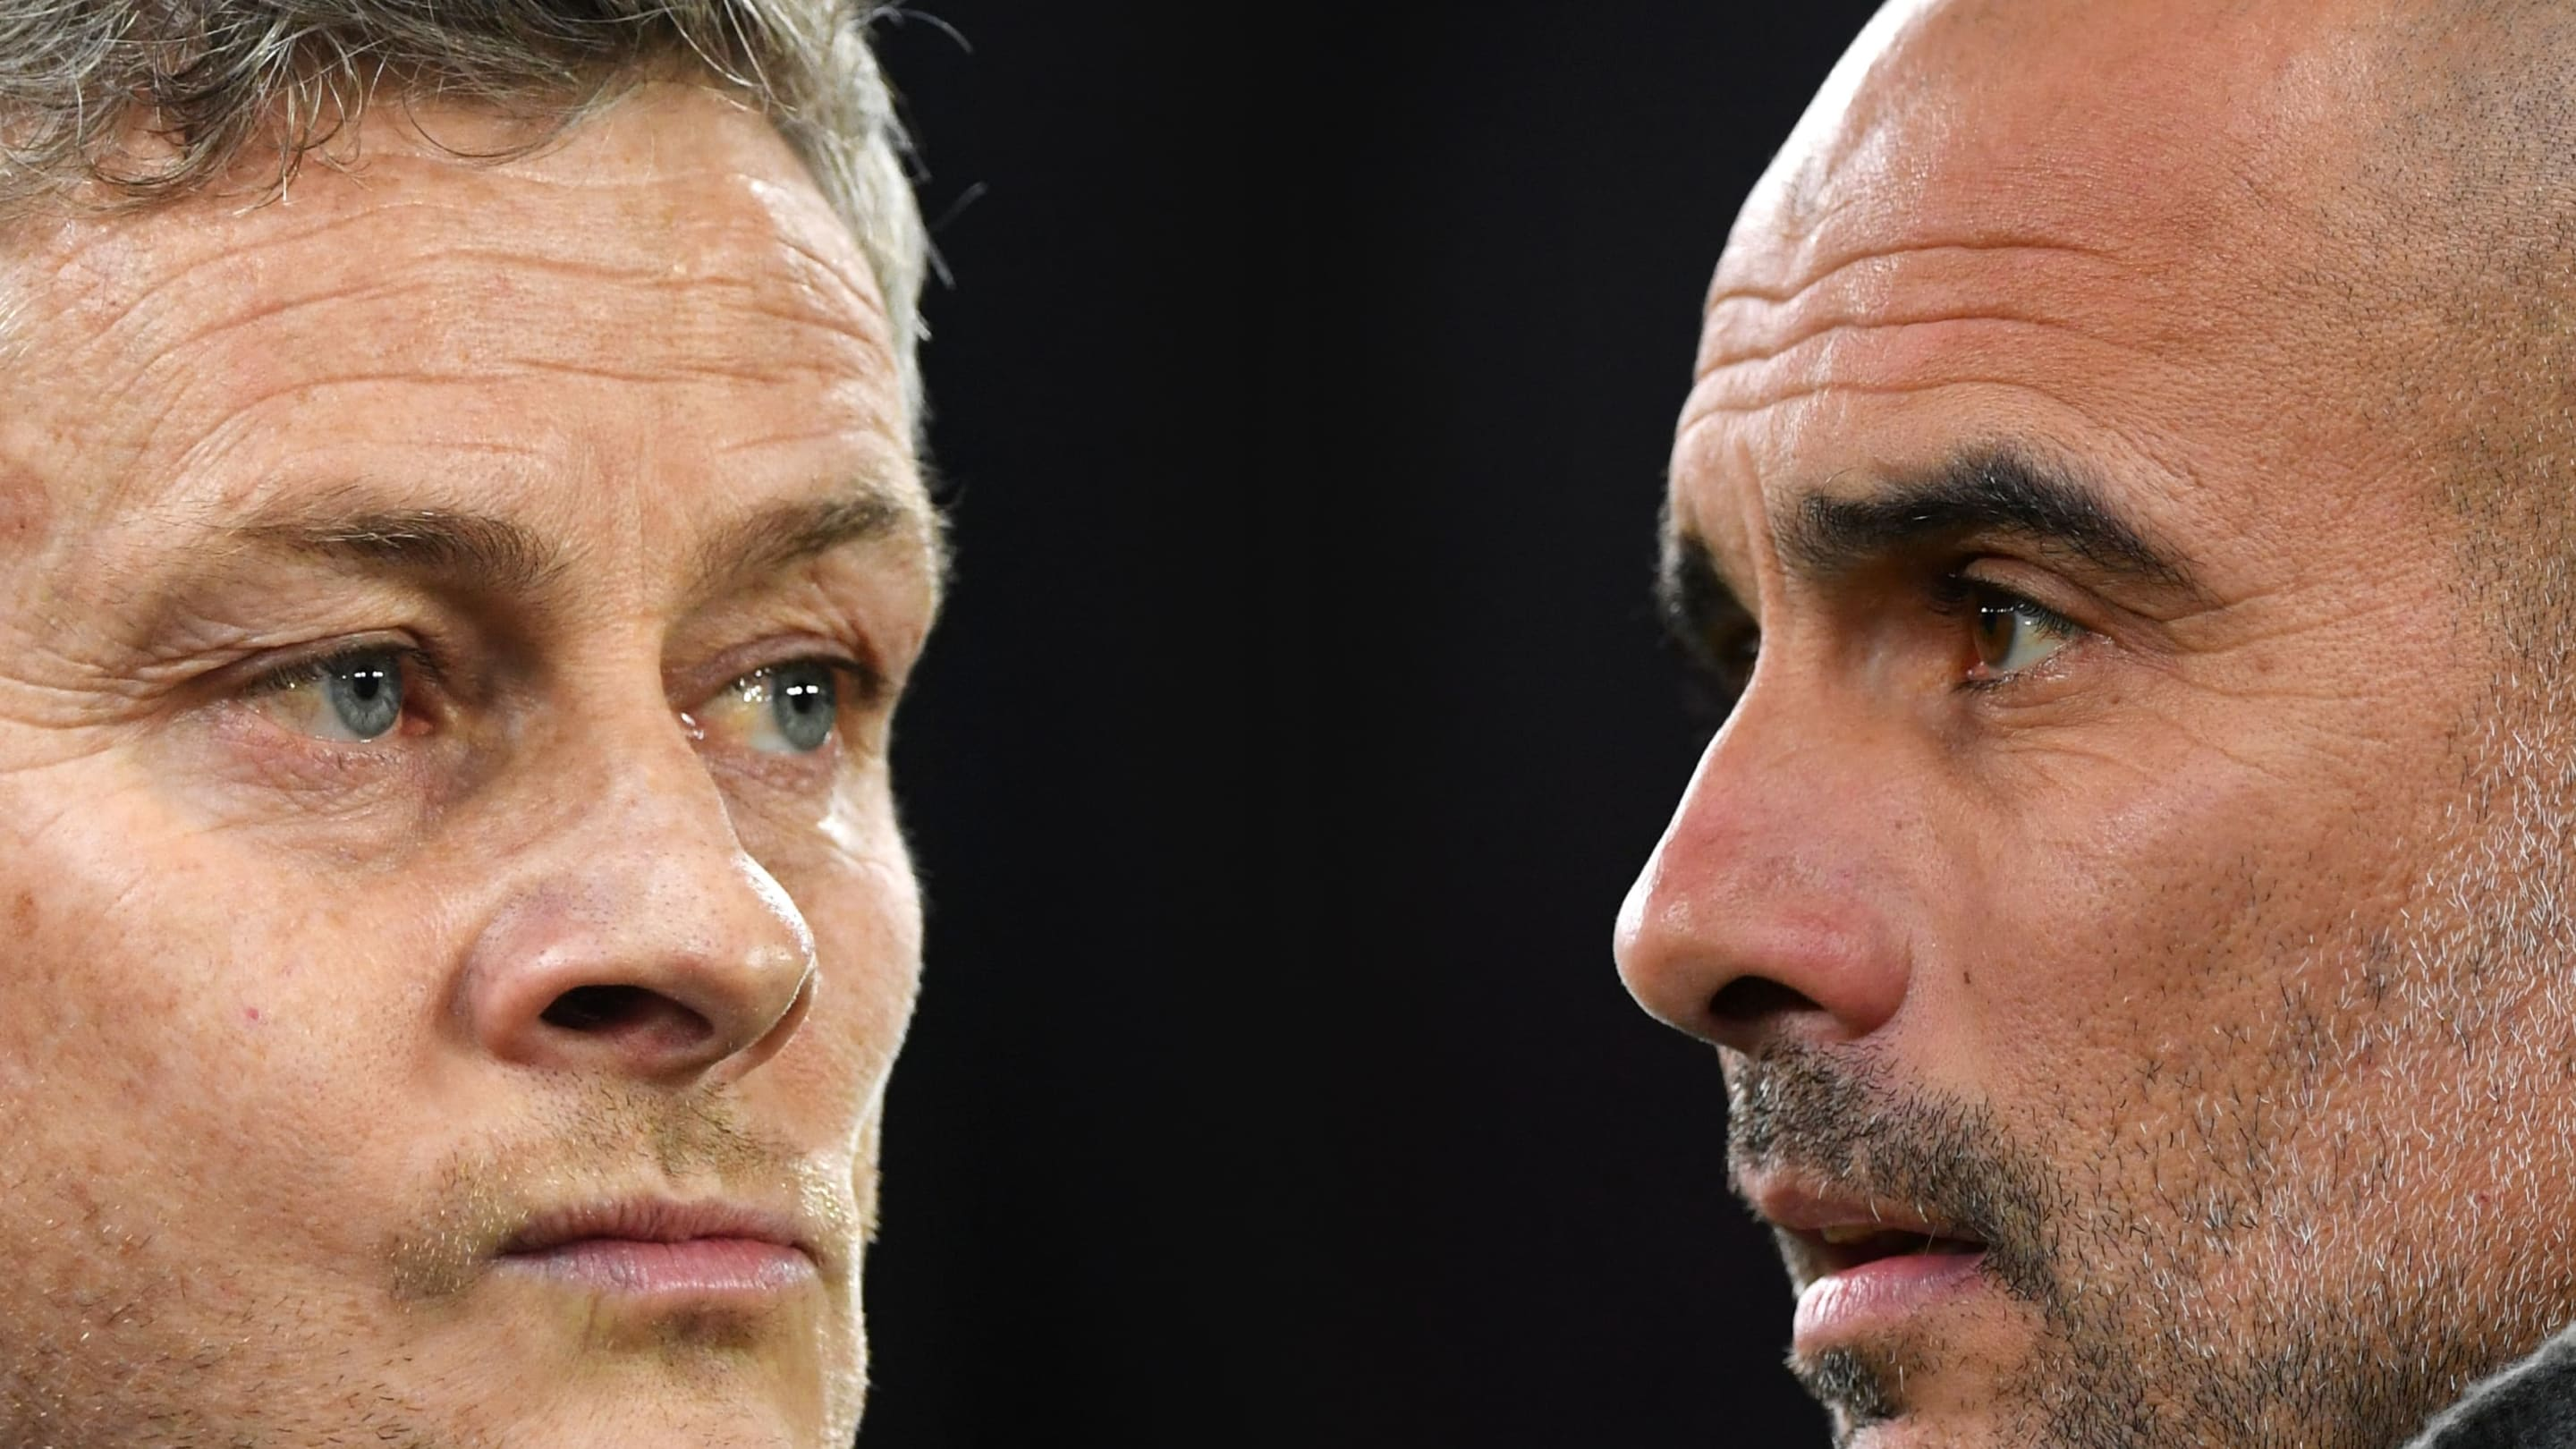 Manchester City vs Manchester United preview: How to watch on TV, live stream, team information & prediction thumbnail